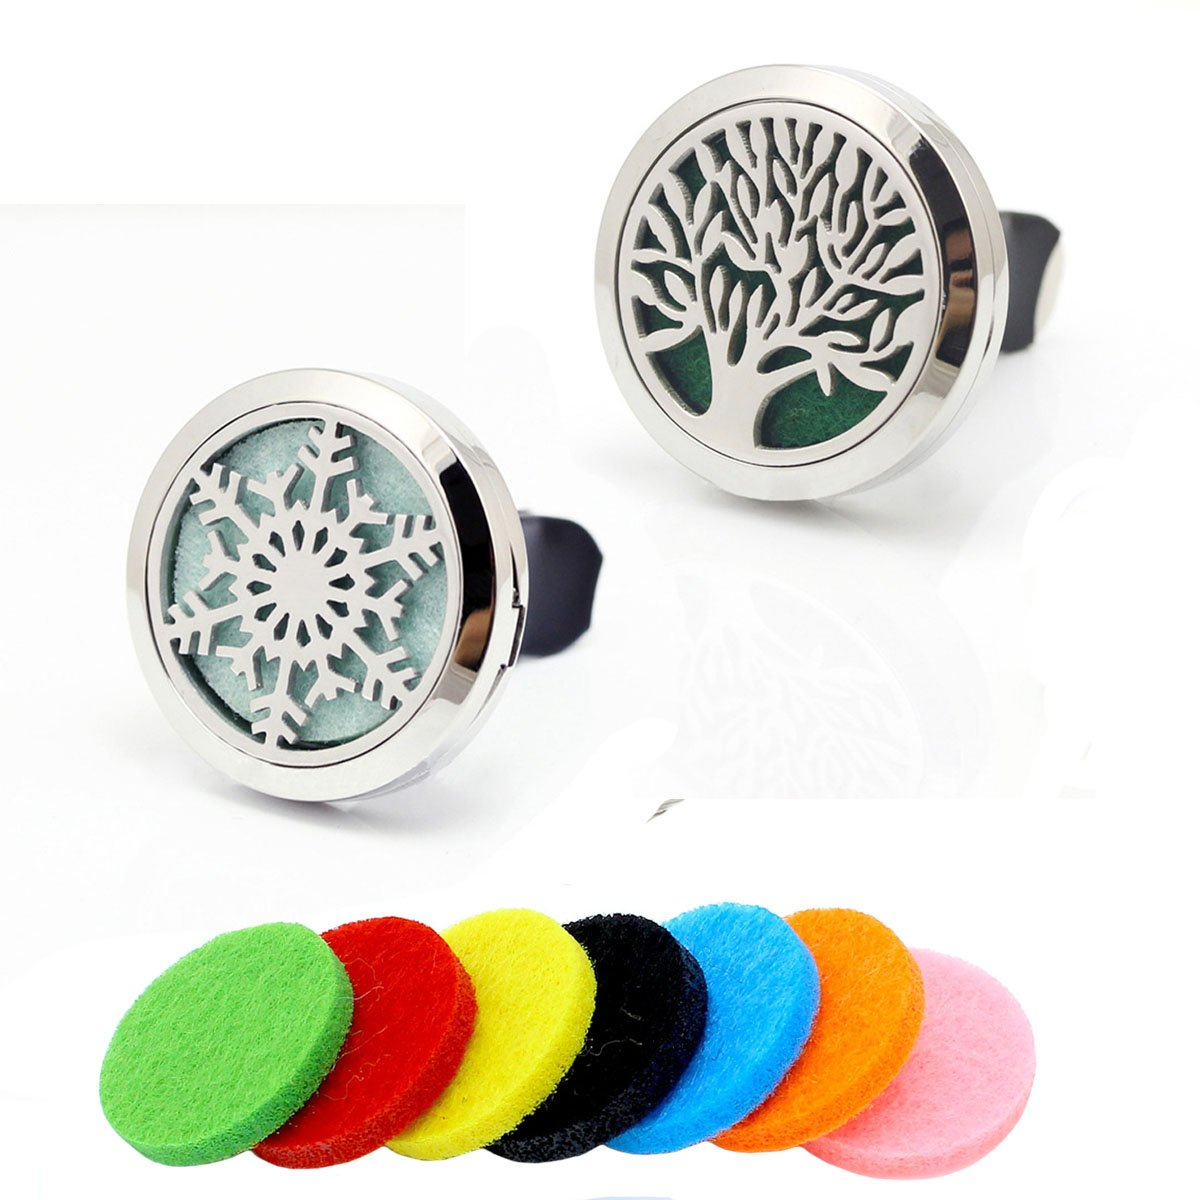 2pcs Stainless Steel Snowflake + Tree of Life Car Locket Aromatherapy Fragrance Essential Oil Diffuser